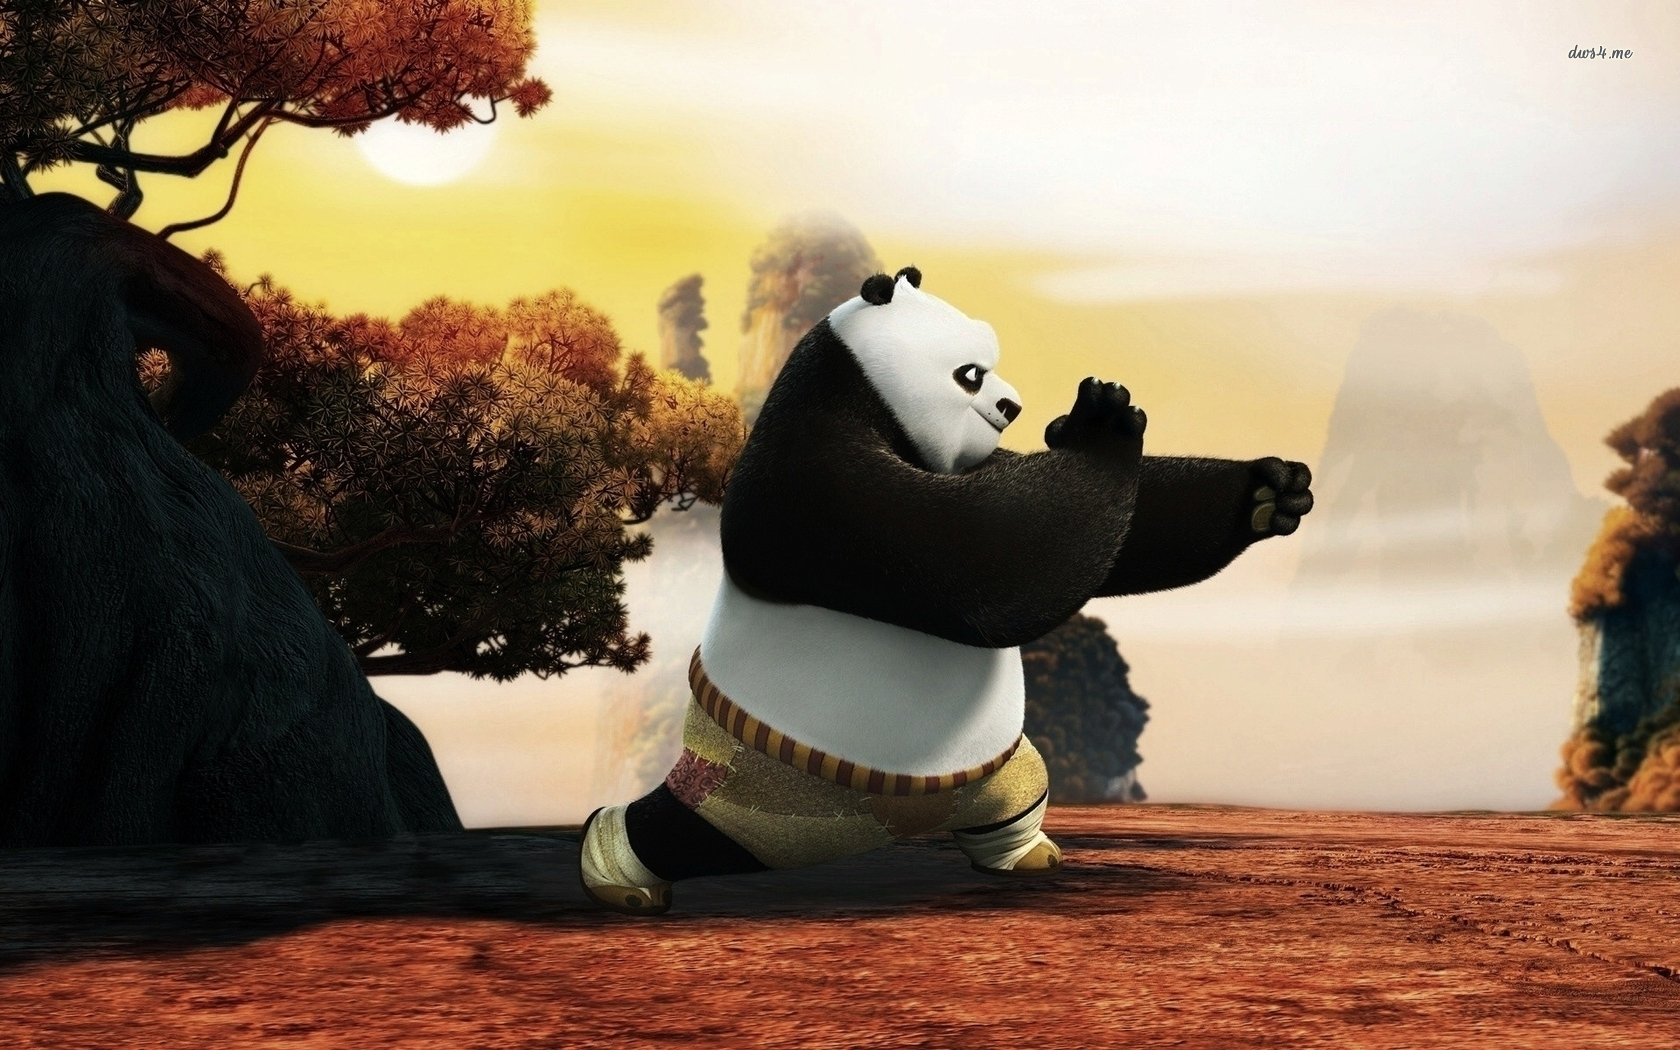 kung fu panda hd wallpaper | hd latest wallpapers